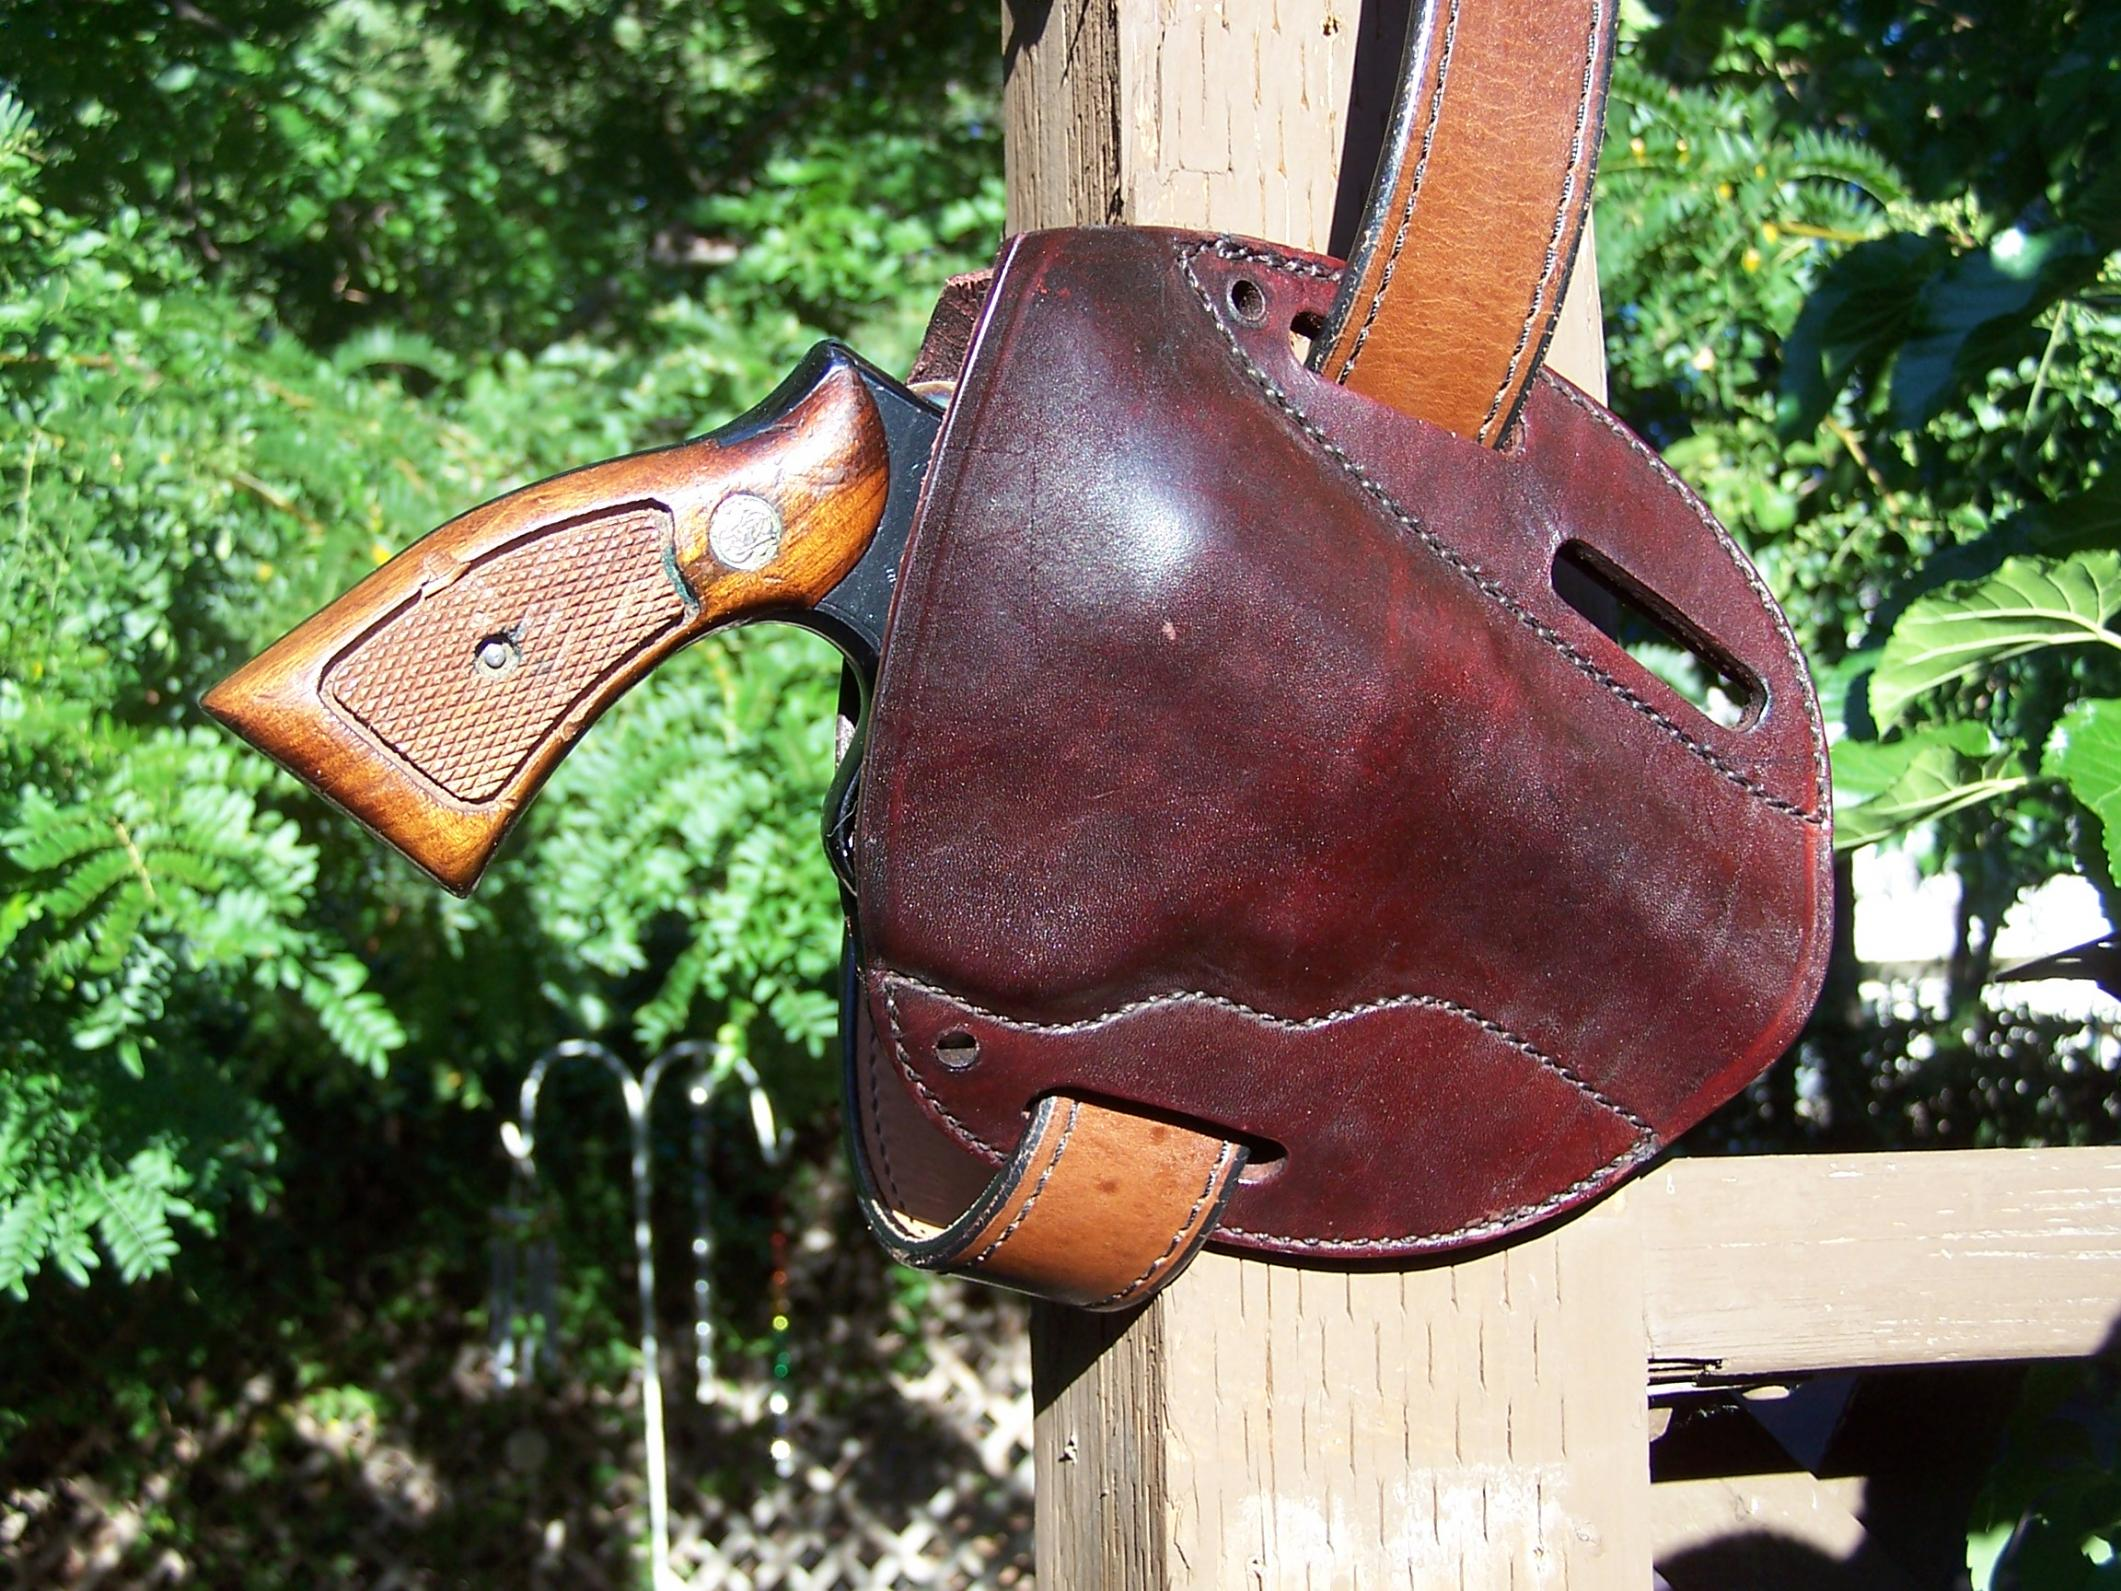 OWB Holster suggestions for an S+W model 64, 3 inch barrel stainless revolver?-005.jpg